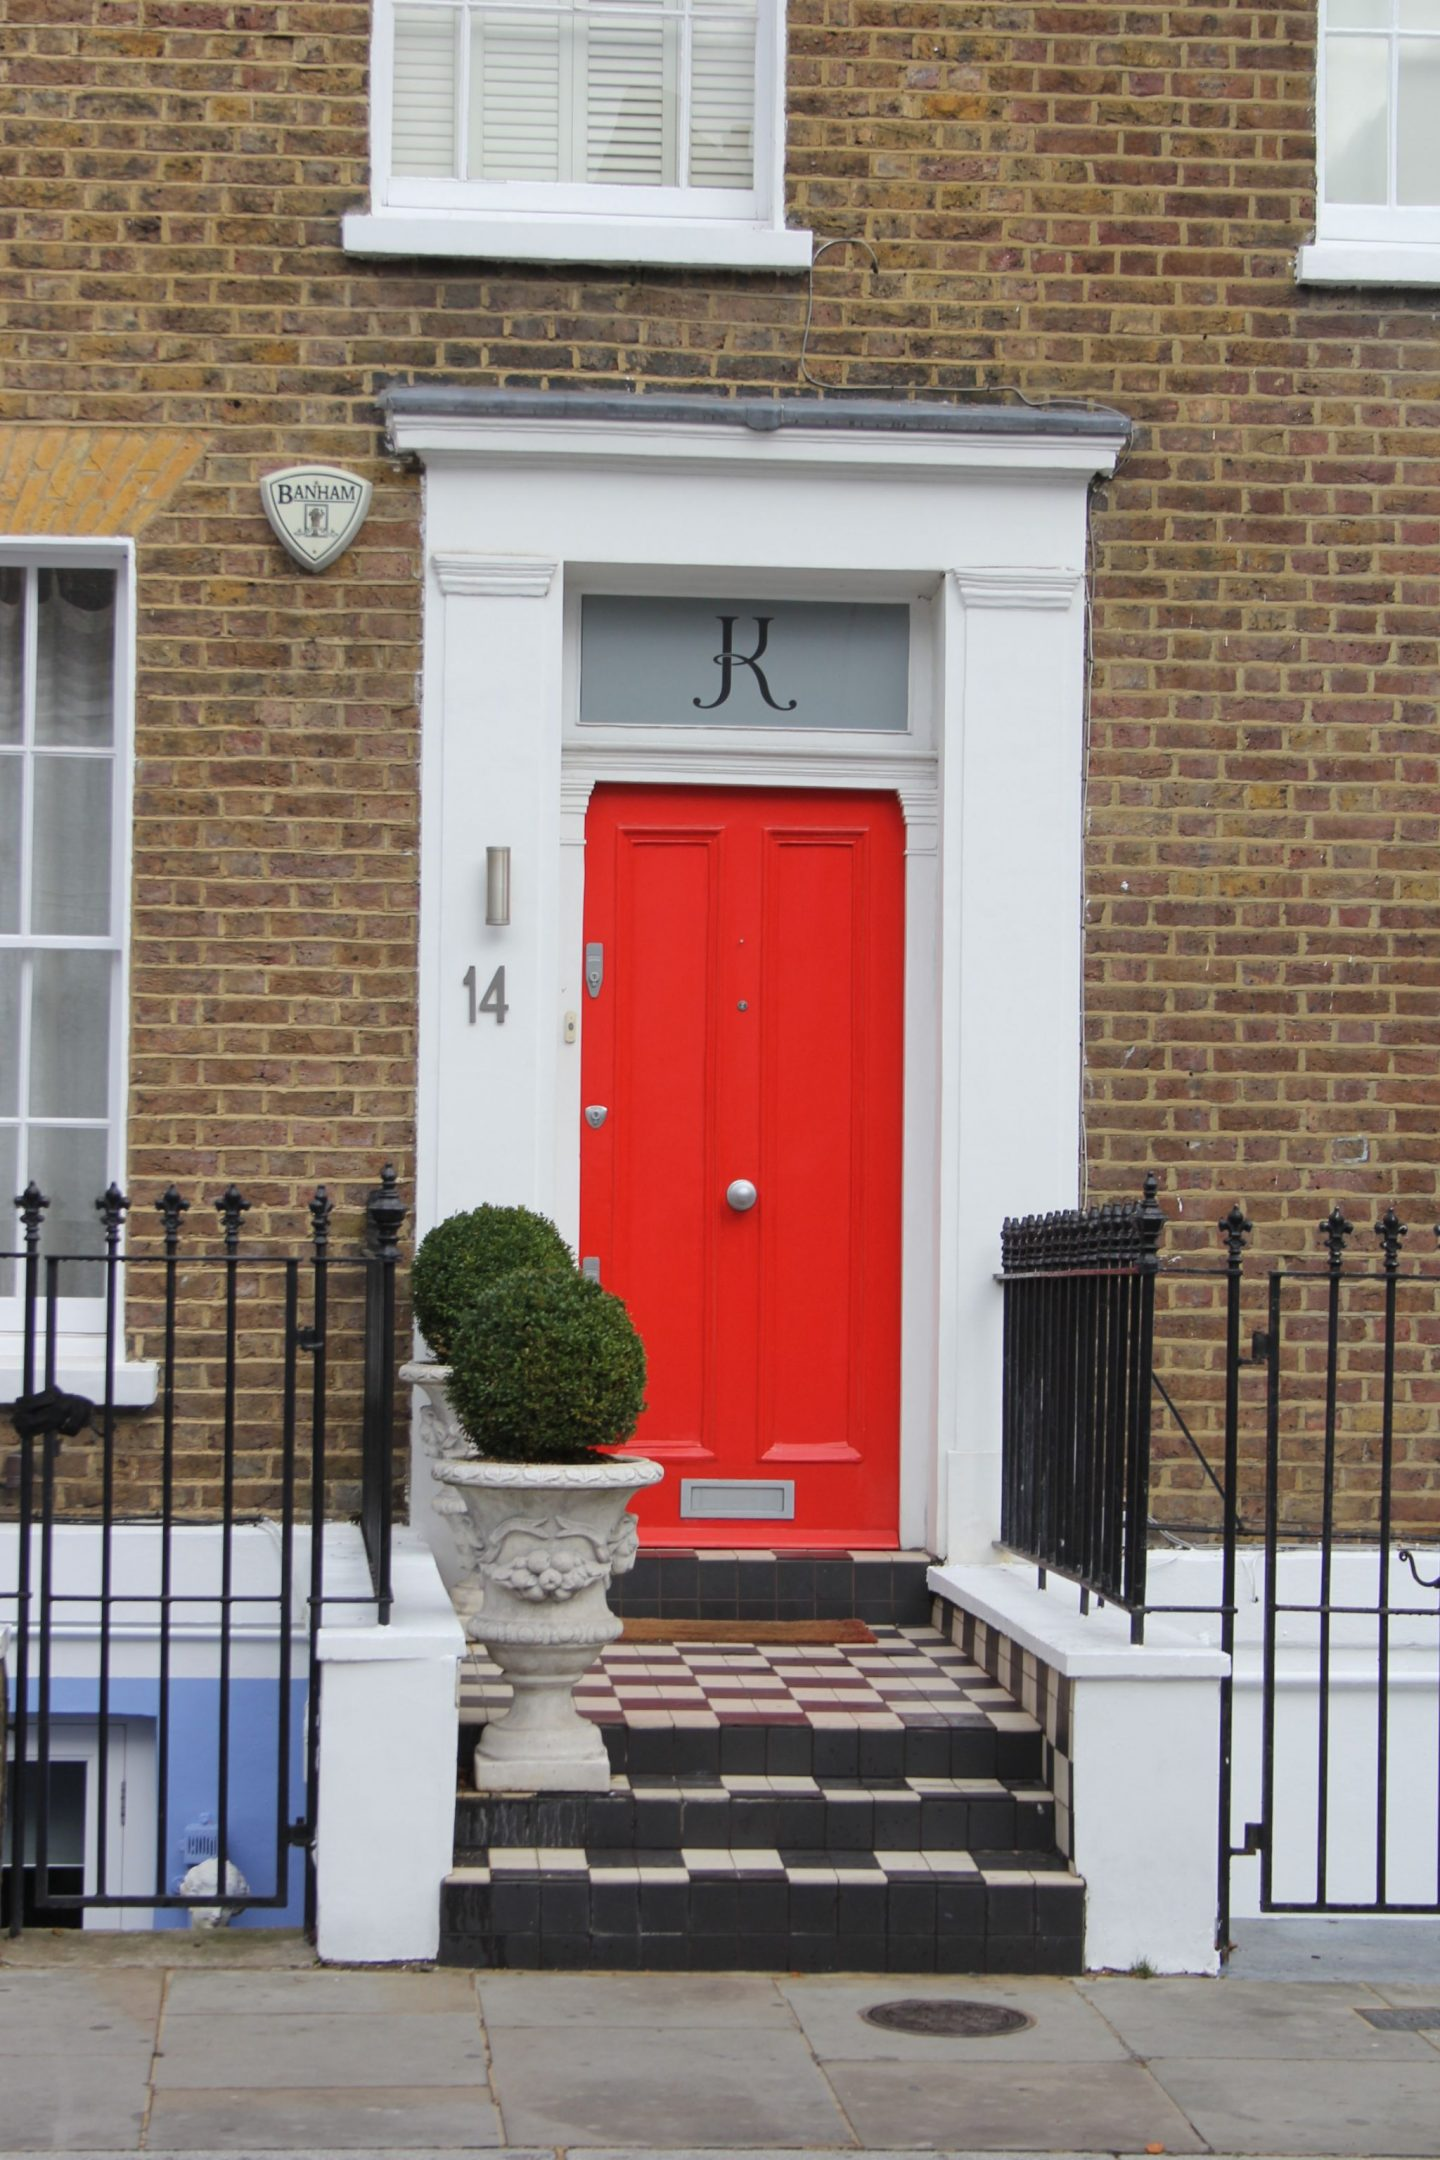 Shocking red orange on a front door! Hello Lovely Studio. Come tour these gorgeous front doors in Notting Hill and Holland Park...certainly lovely indeed. Curb appeal and Paint Color Inspiration. Lovely London Doors & Paint Color Ideas!